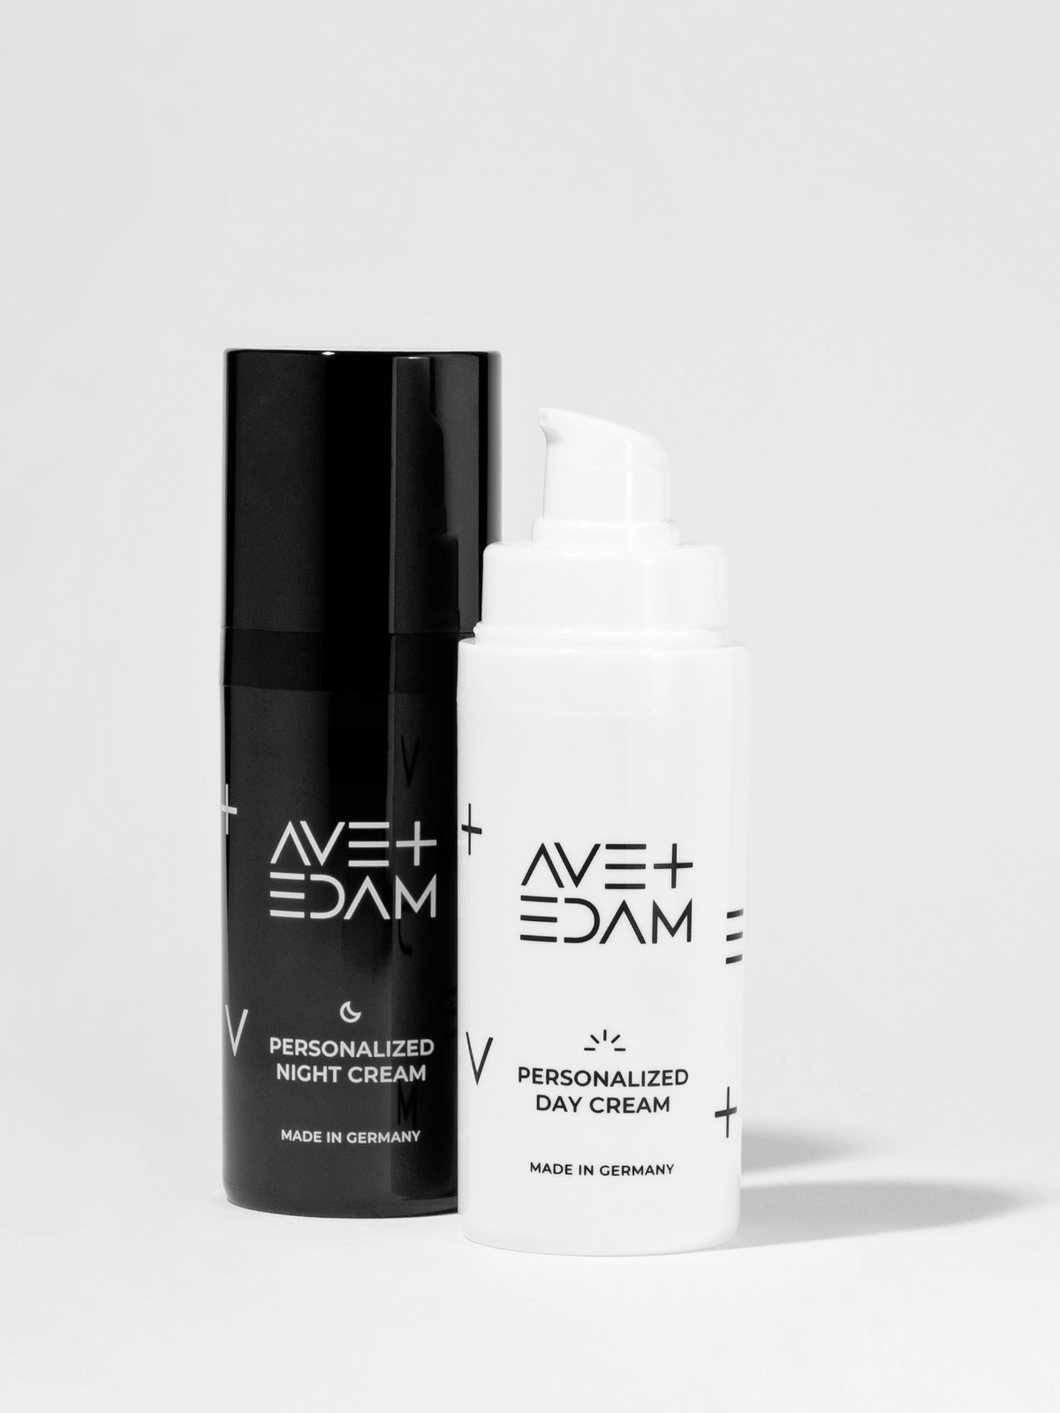 Daily Routine Personalized AVE + EDAM 30ml